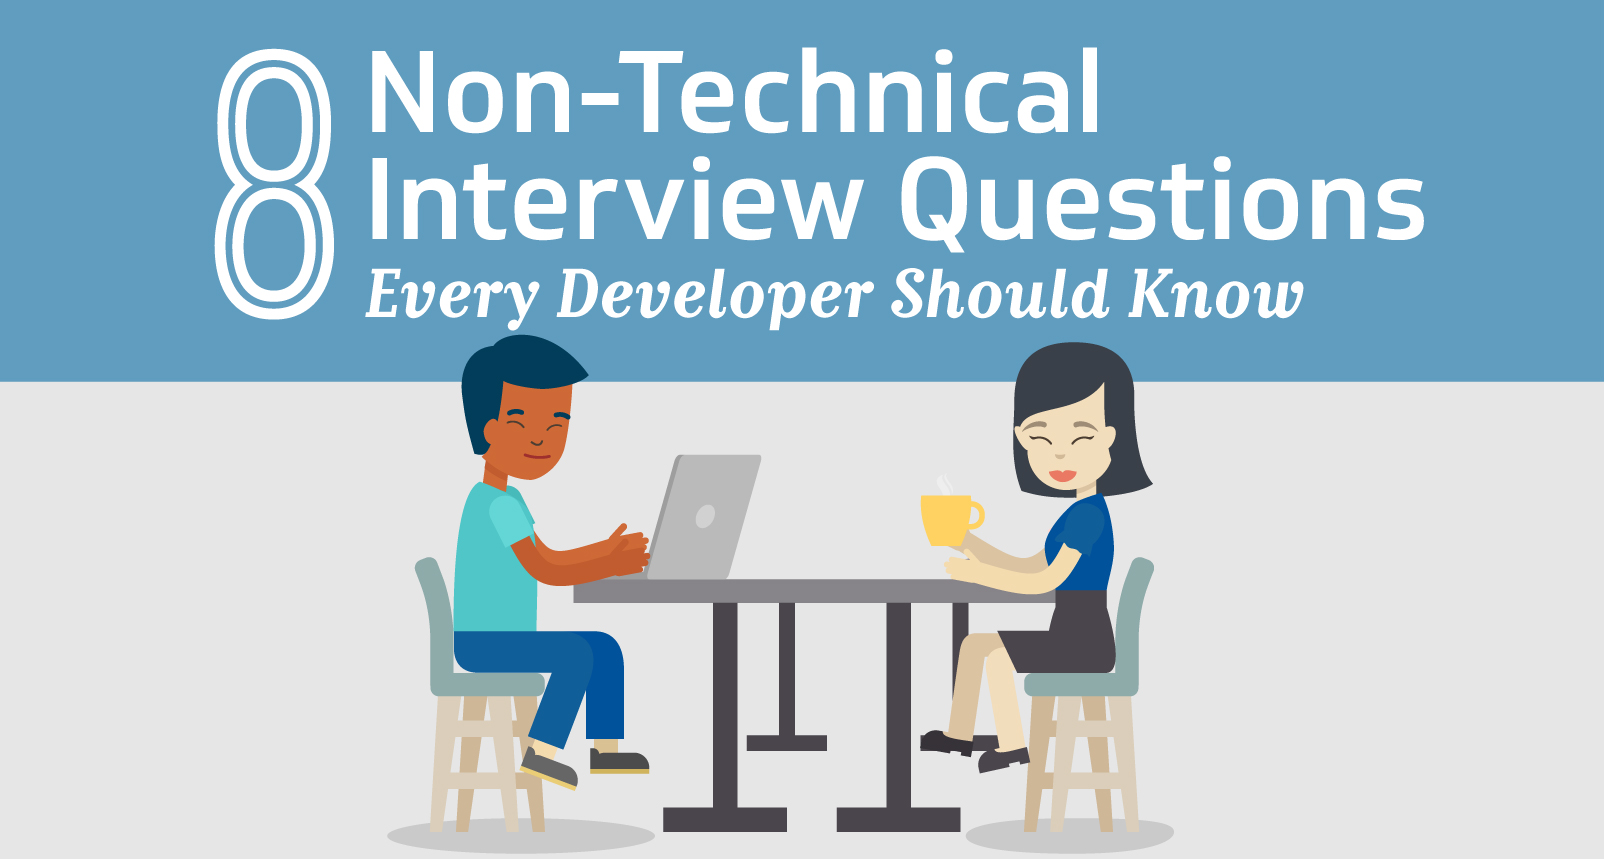 8 Non-Technical Interview Questions